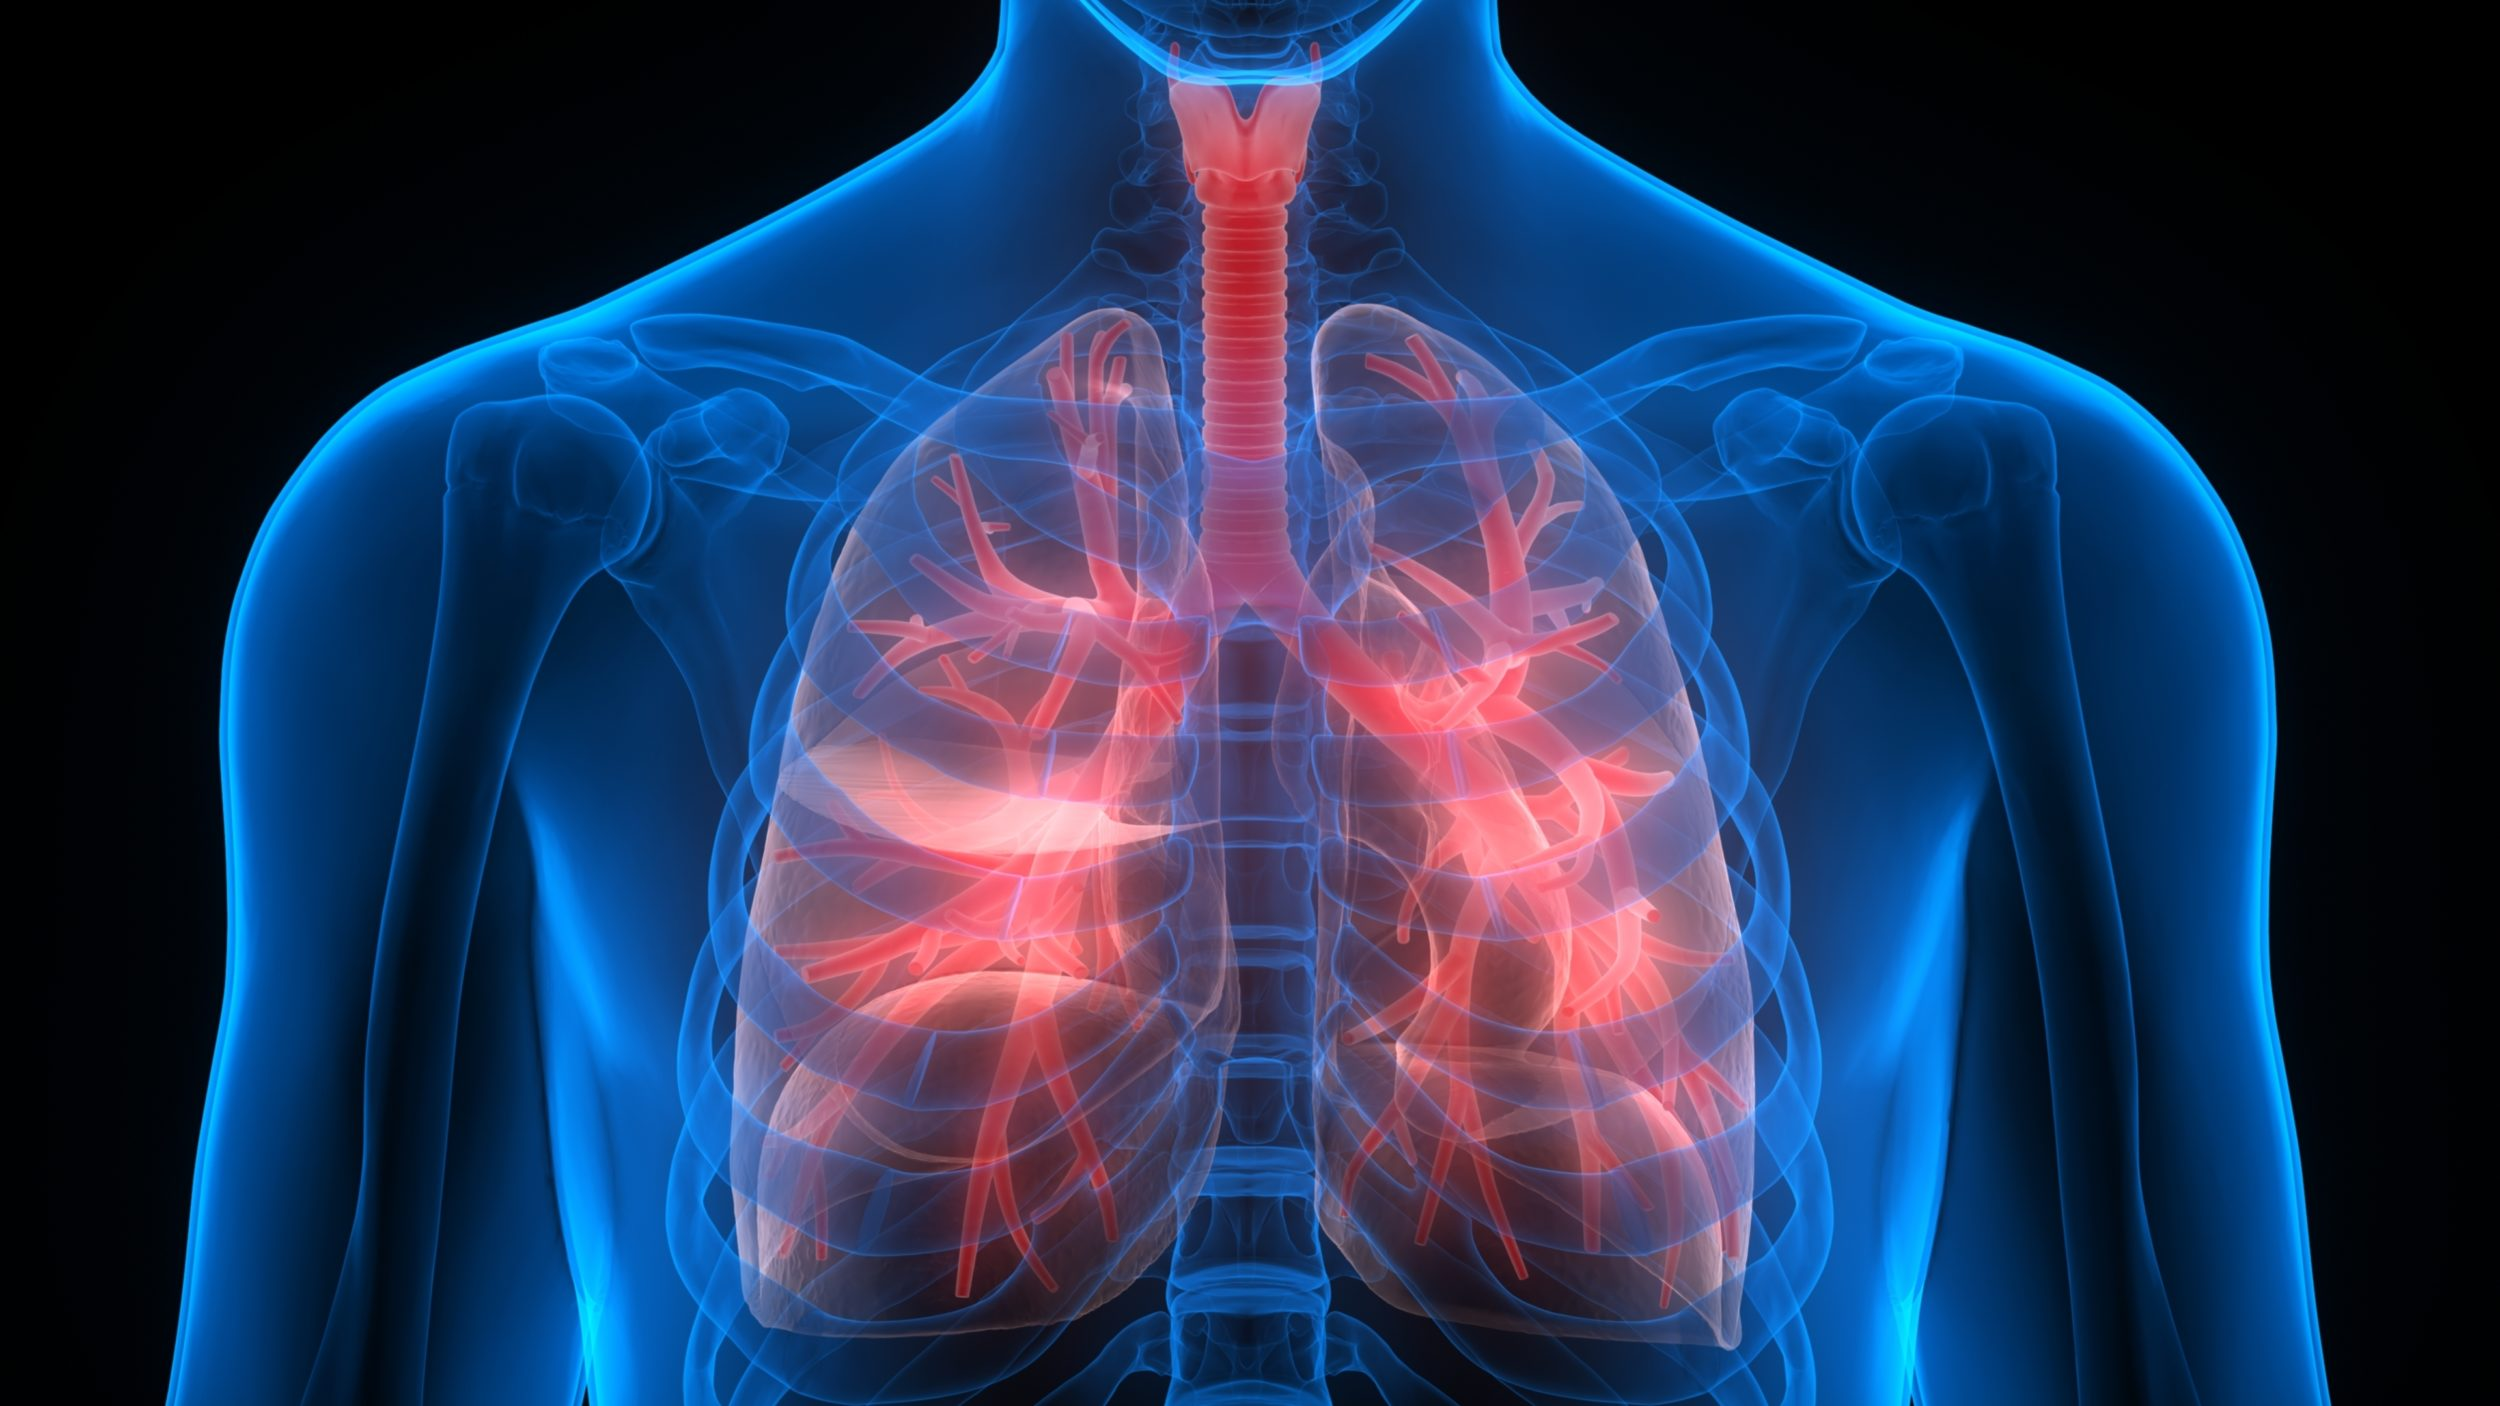 Know the best treatment for Pulmonary Hypertension